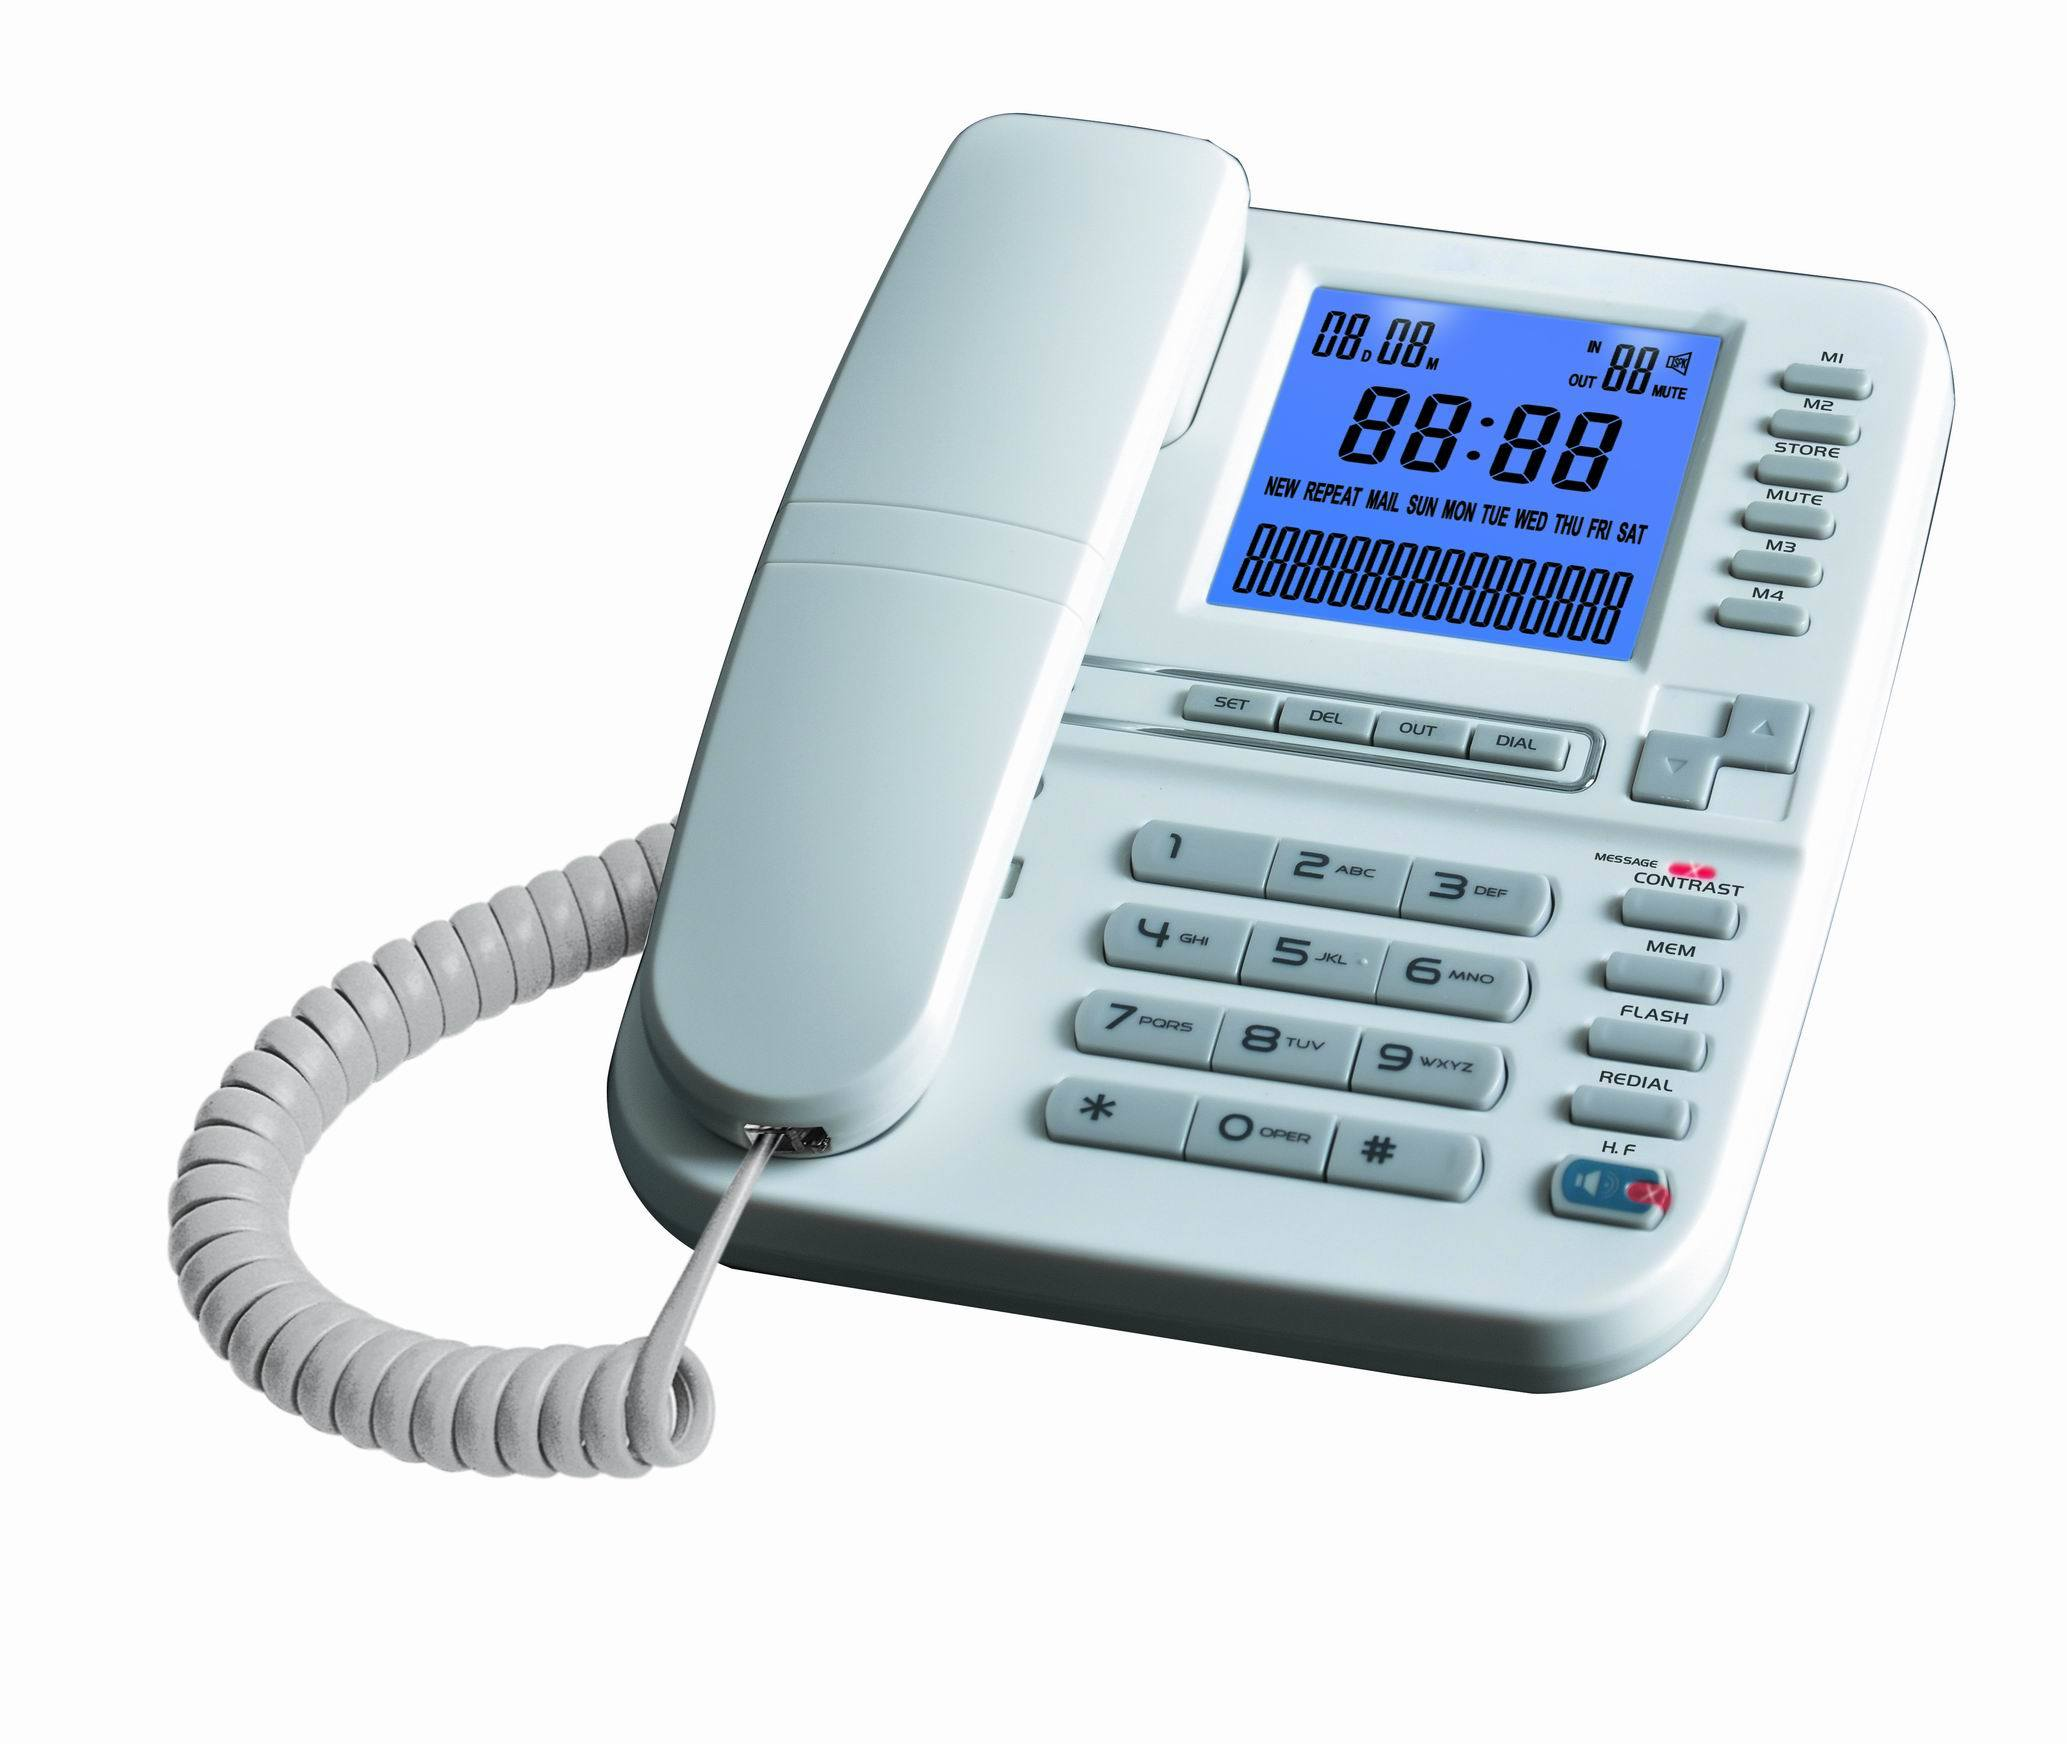 Caller ID Telephone, Telephone, Jumbo LCD Telephone, Big LCD Display, Speaker Phone